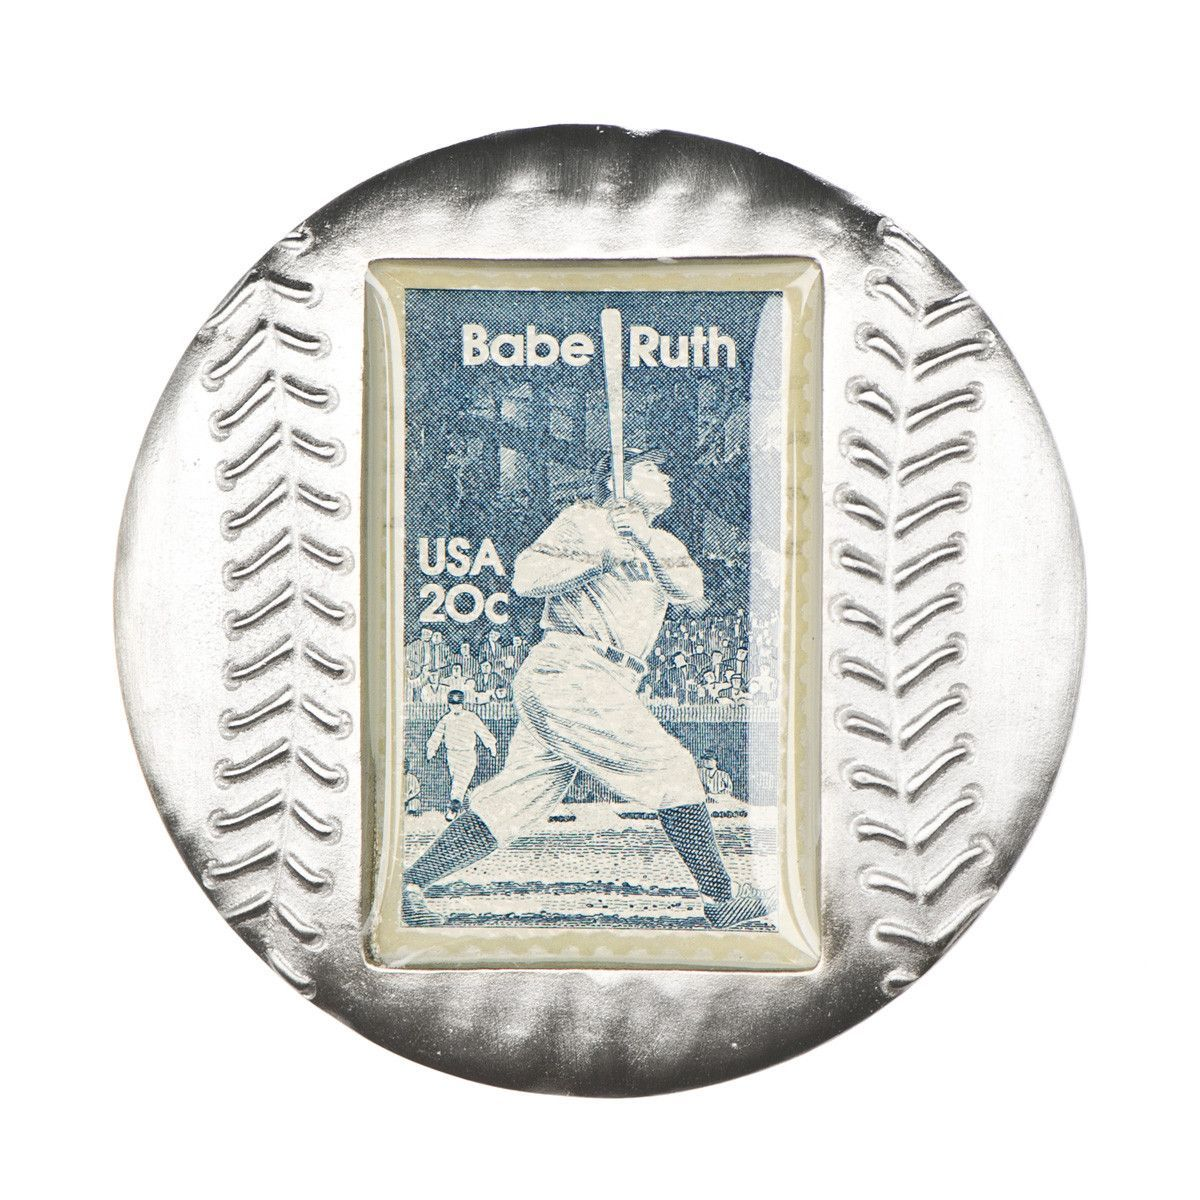 Baseball Paperweight with Babe Ruth Stamp